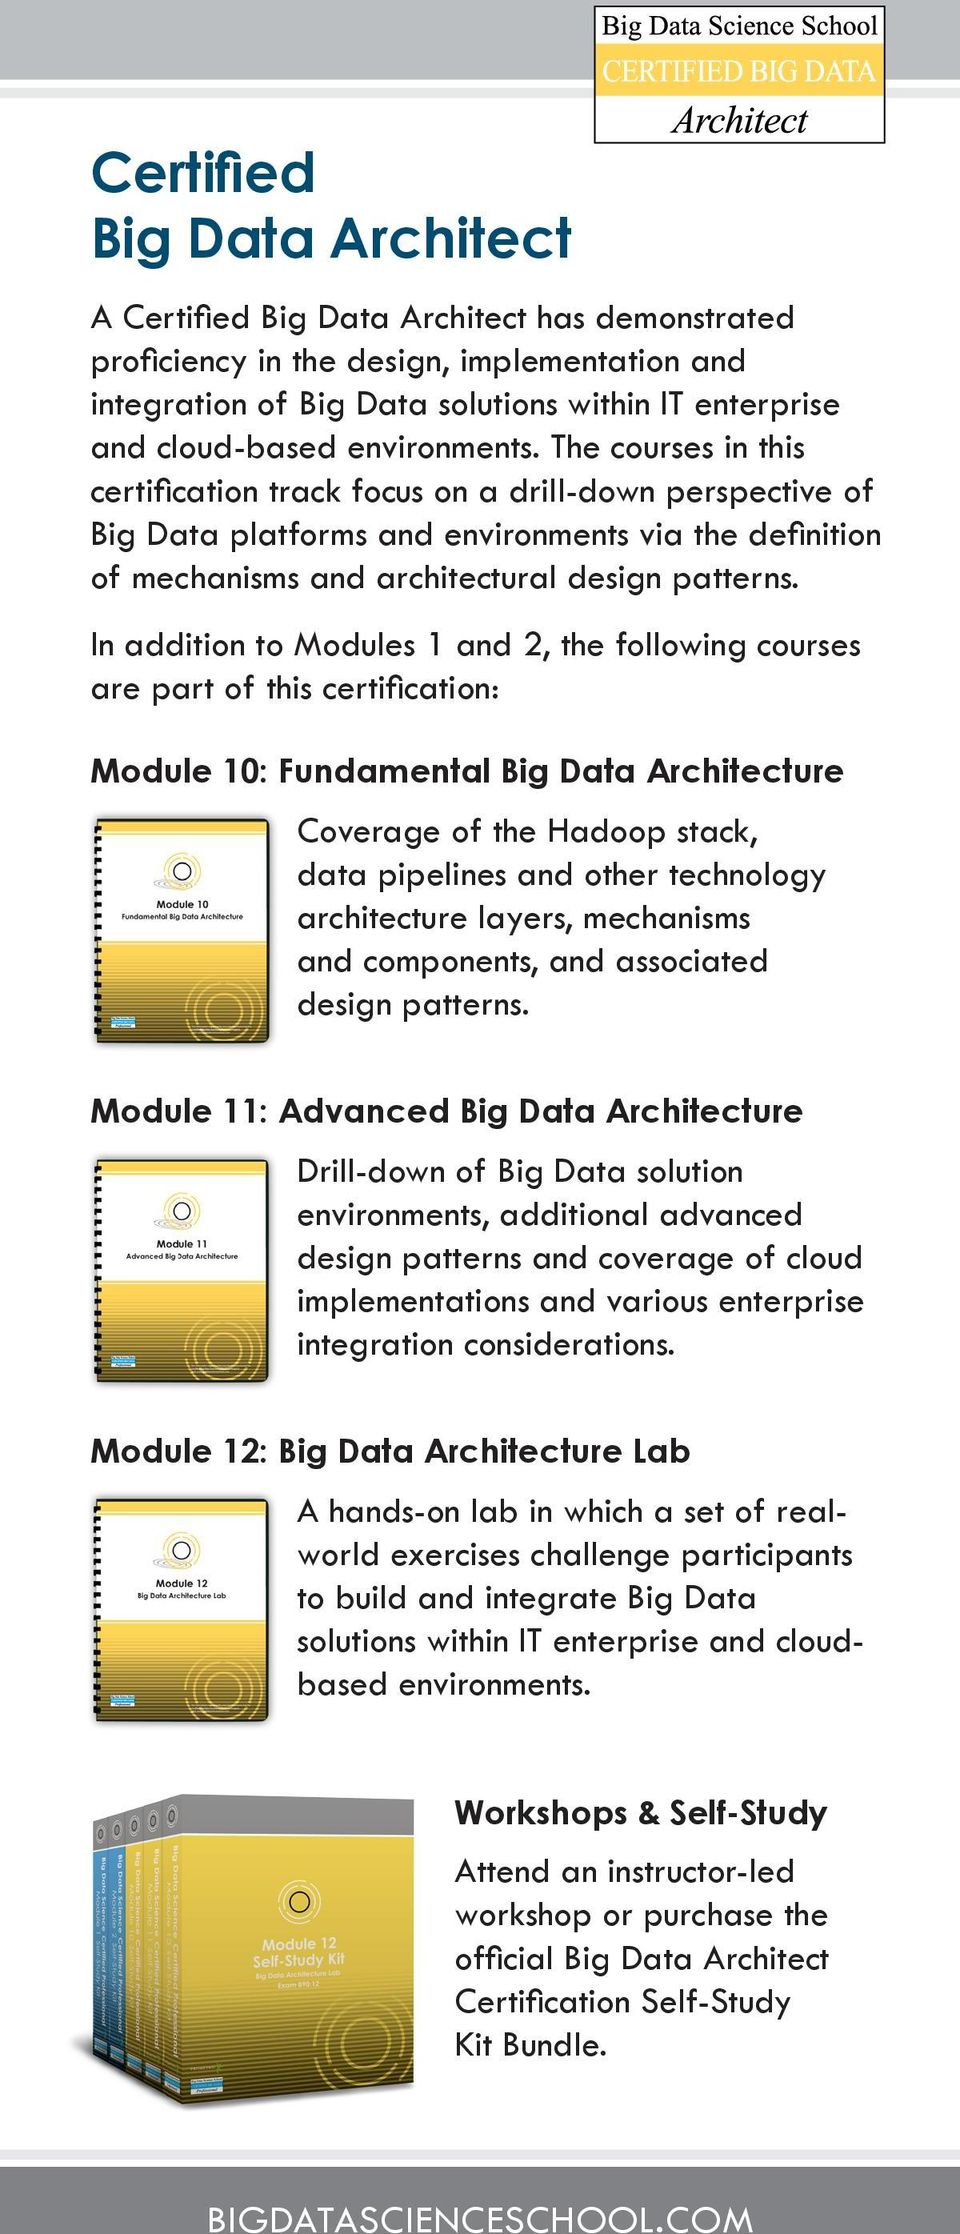 In addition to Modules 1 and 2, the following courses are part of this certification: Module 10: Fundamental Big Data Architecture Coverage of the Hadoop stack, data pipelines and other technology